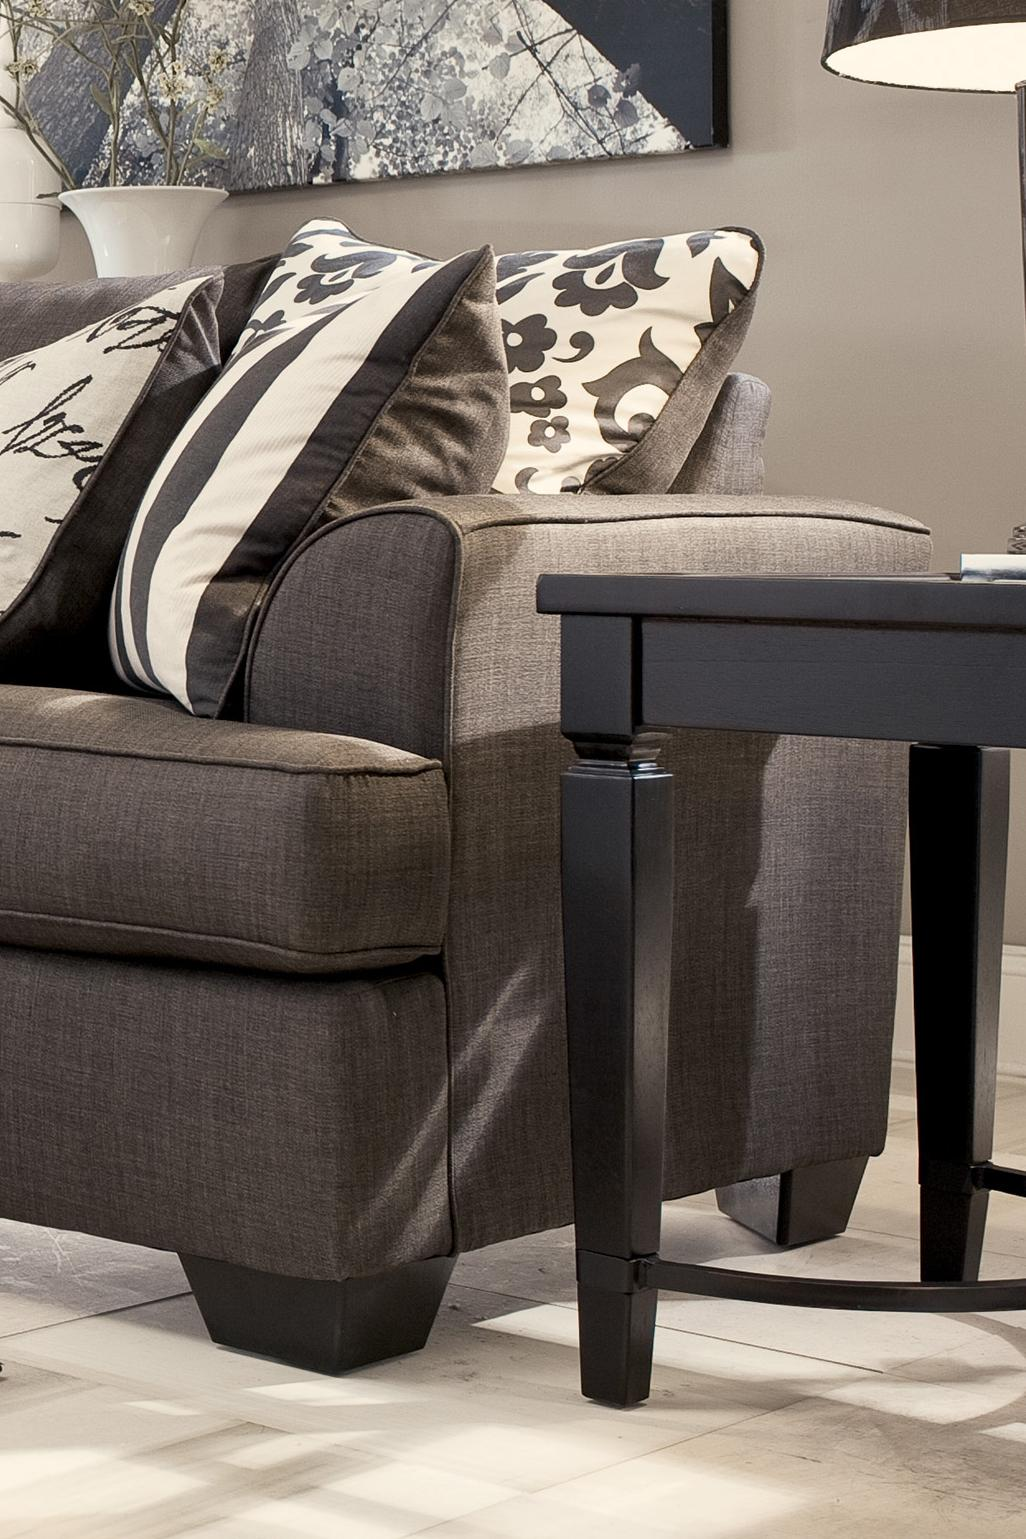 Awe Inspiring Levon Charcoal 73403 By Signature Design By Ashley Download Free Architecture Designs Scobabritishbridgeorg